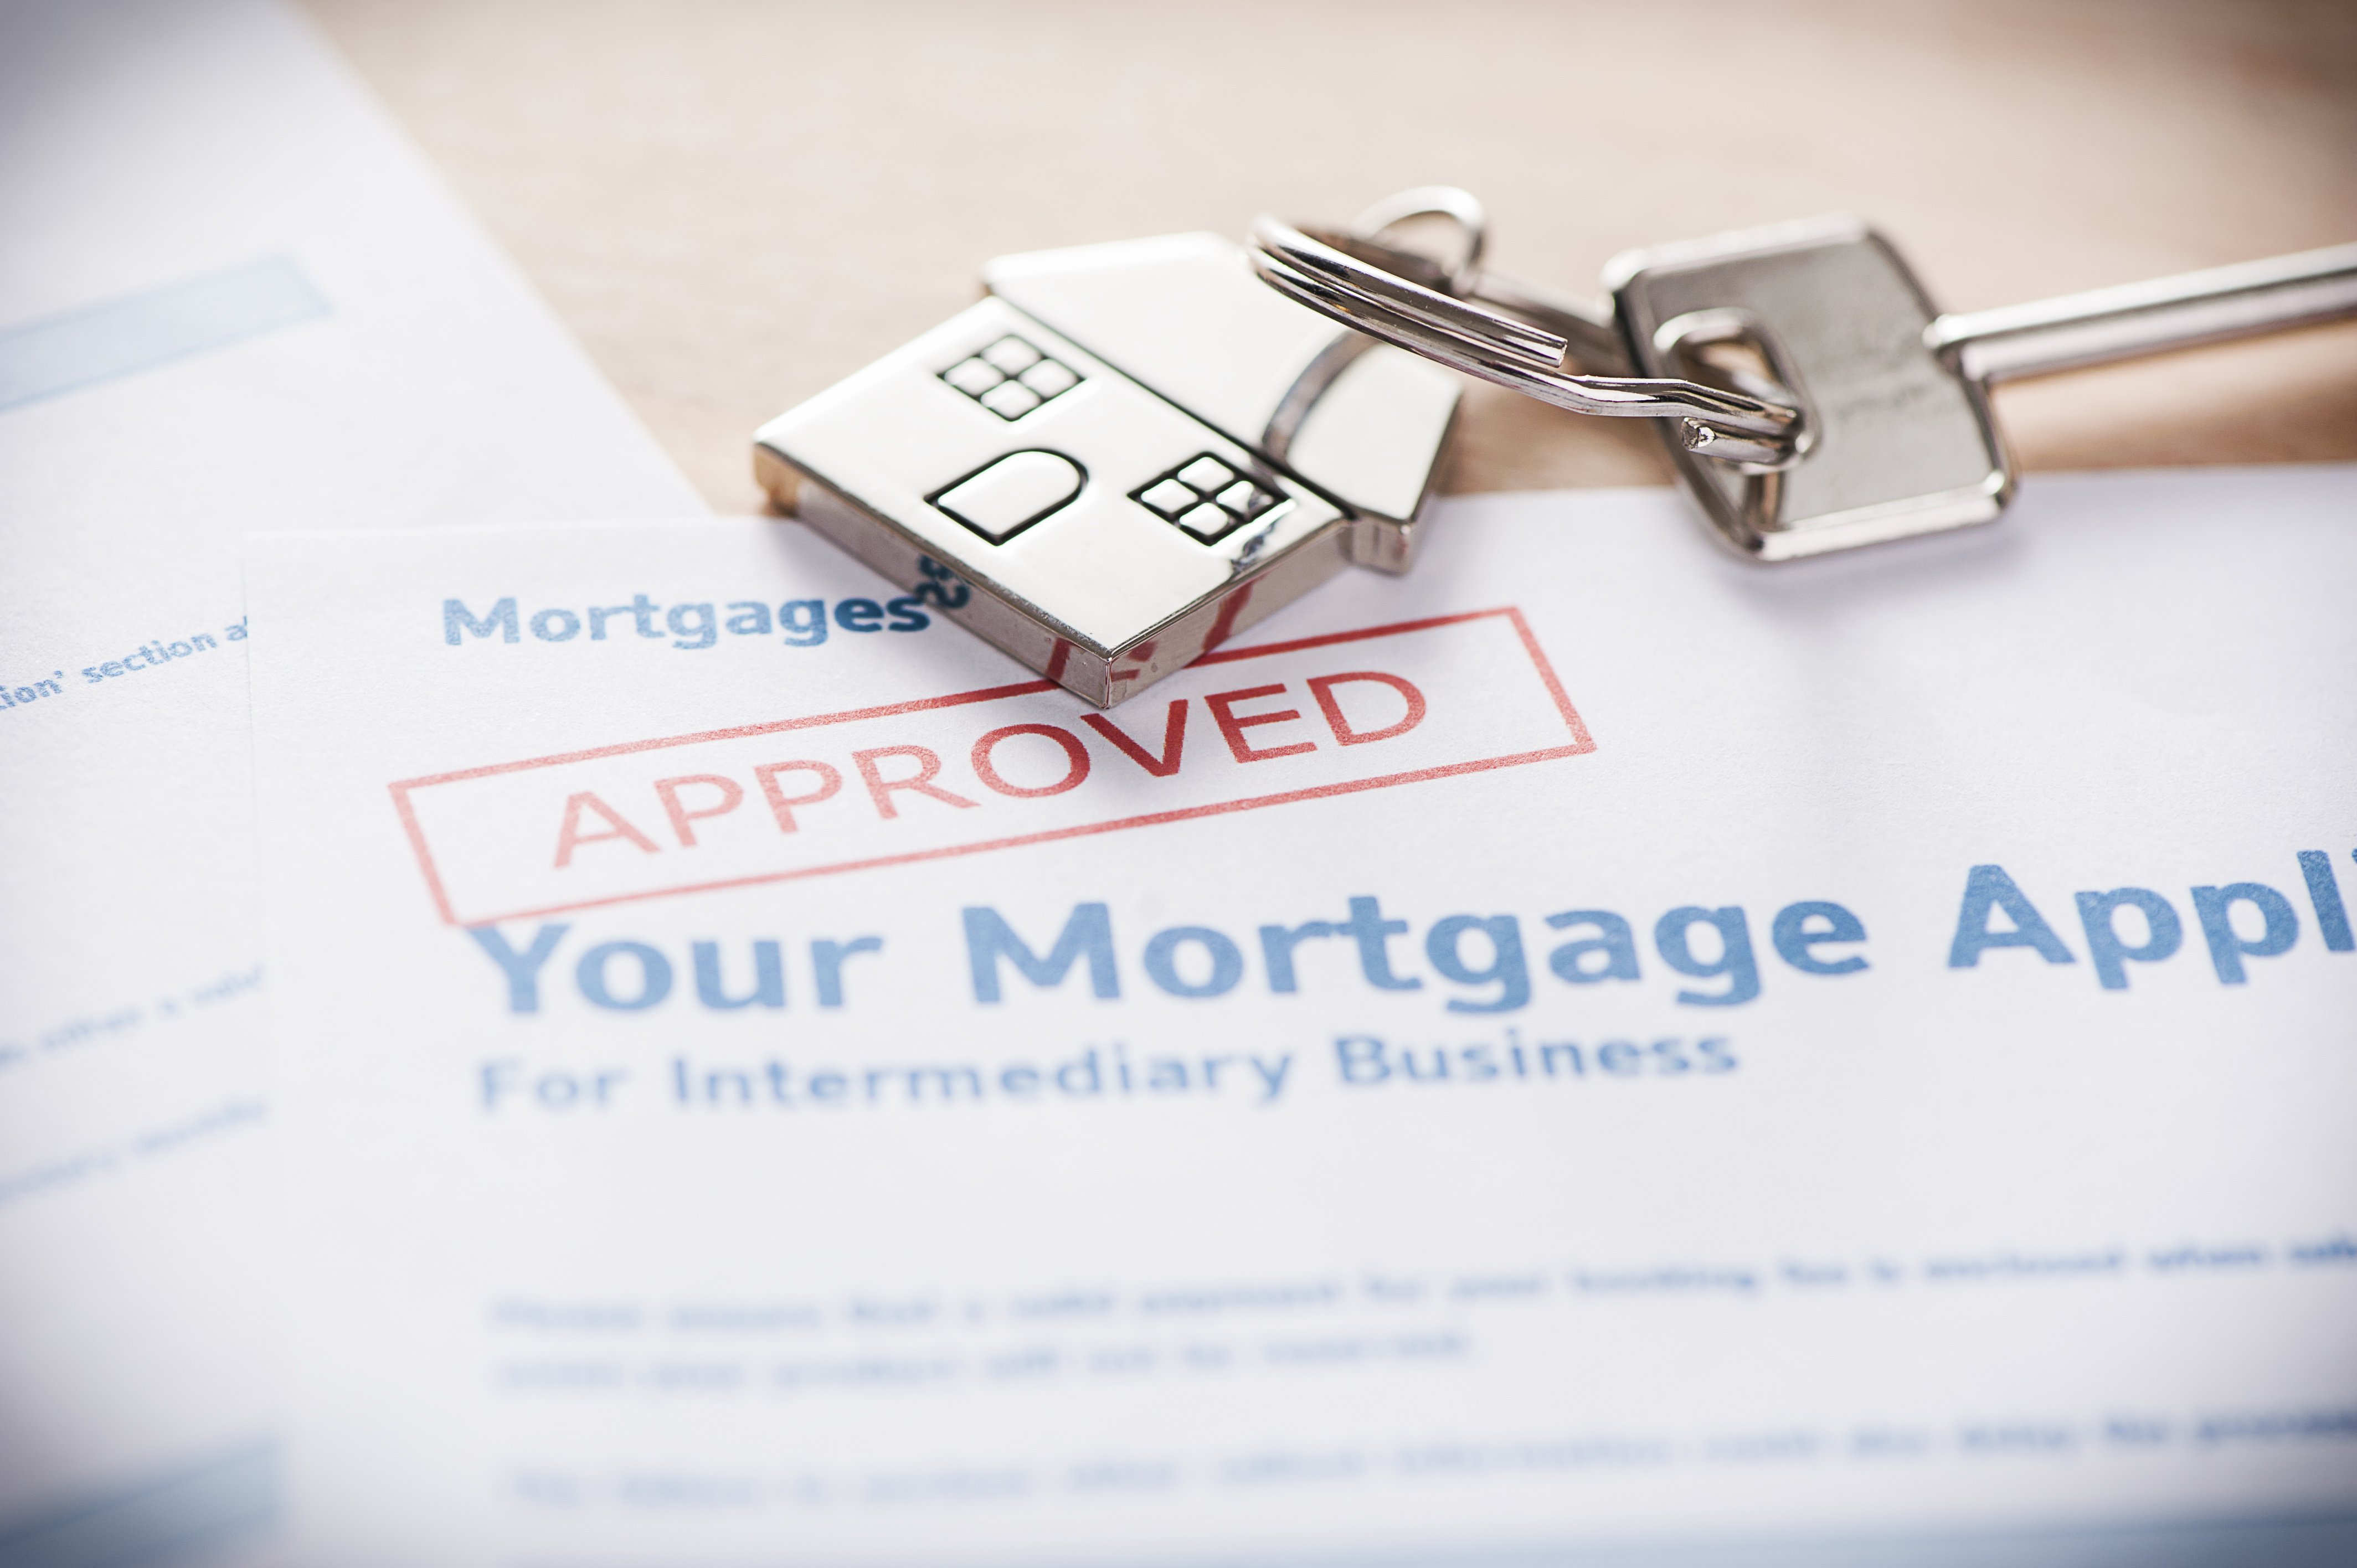 Mortgage loan approved by lender